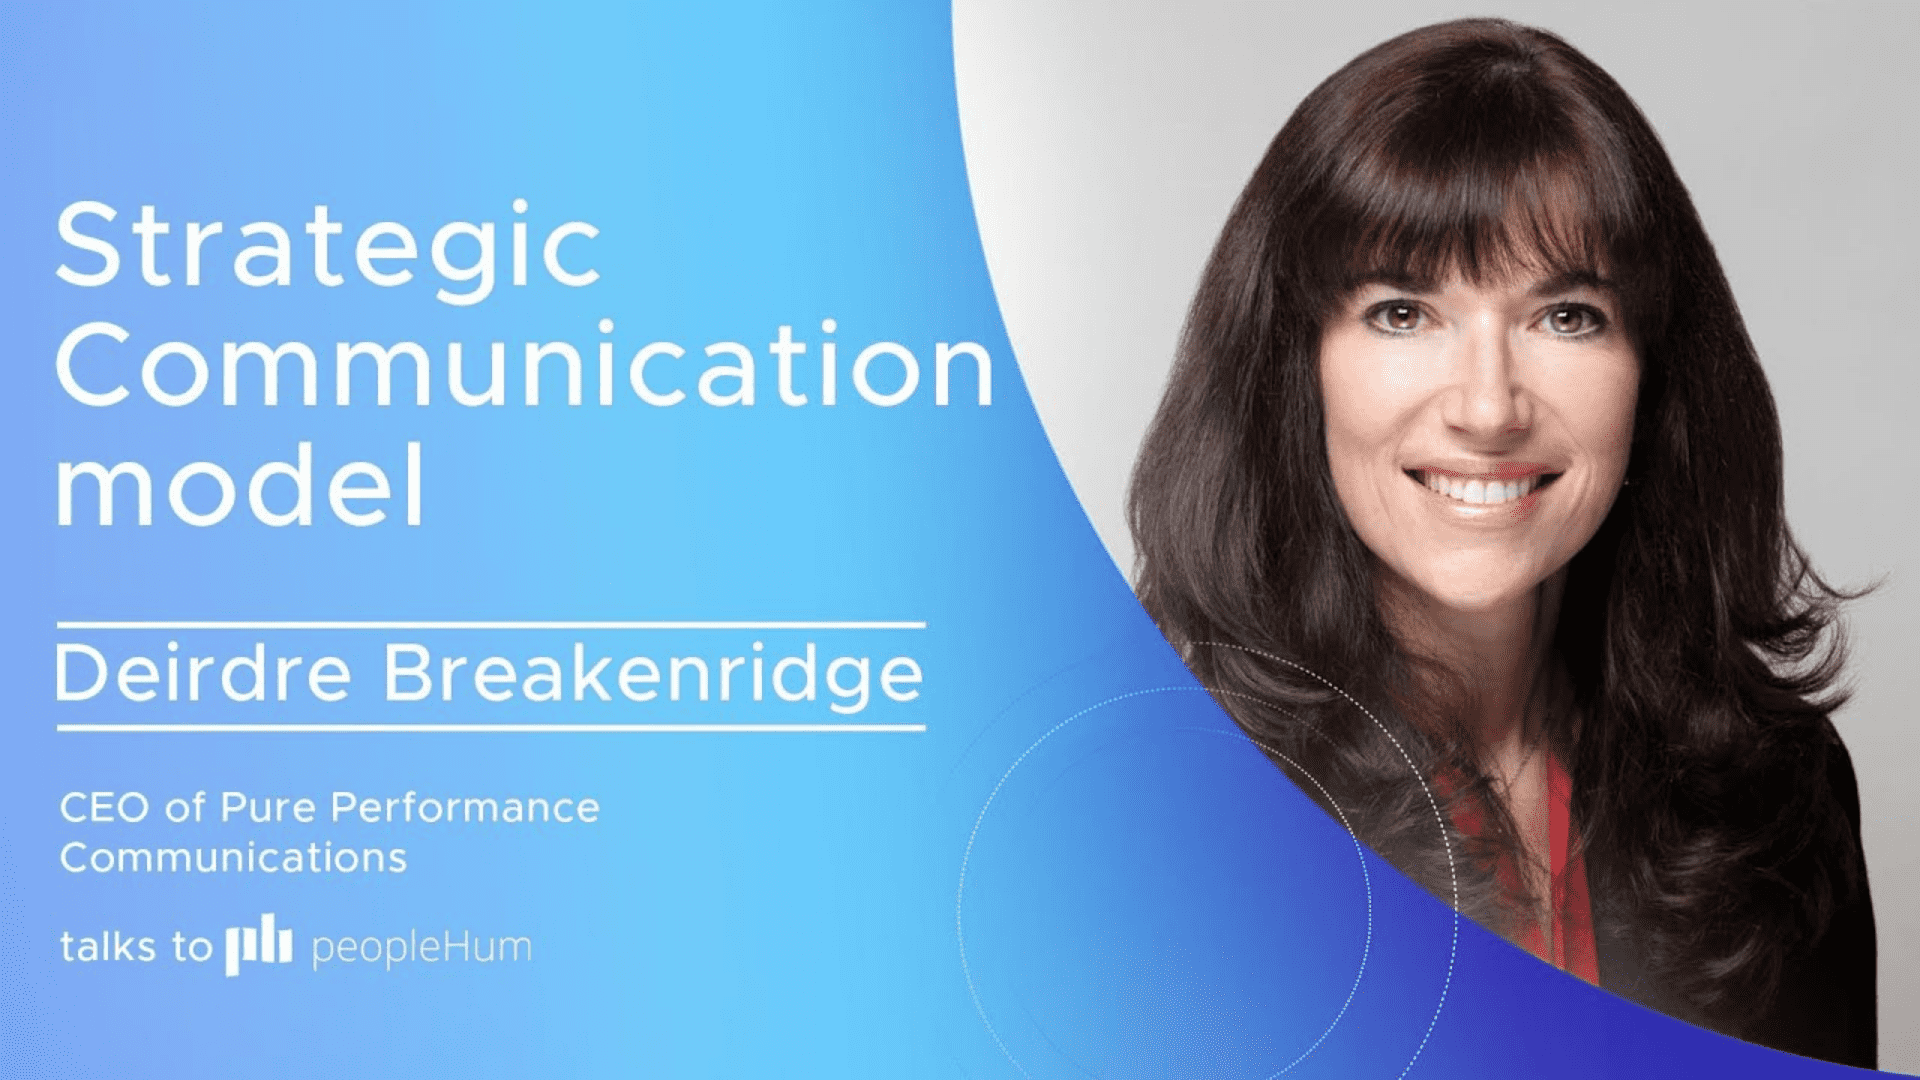 The Ultimate Communication Model for modern businesses - Deirdre Breakinridge [Interview]